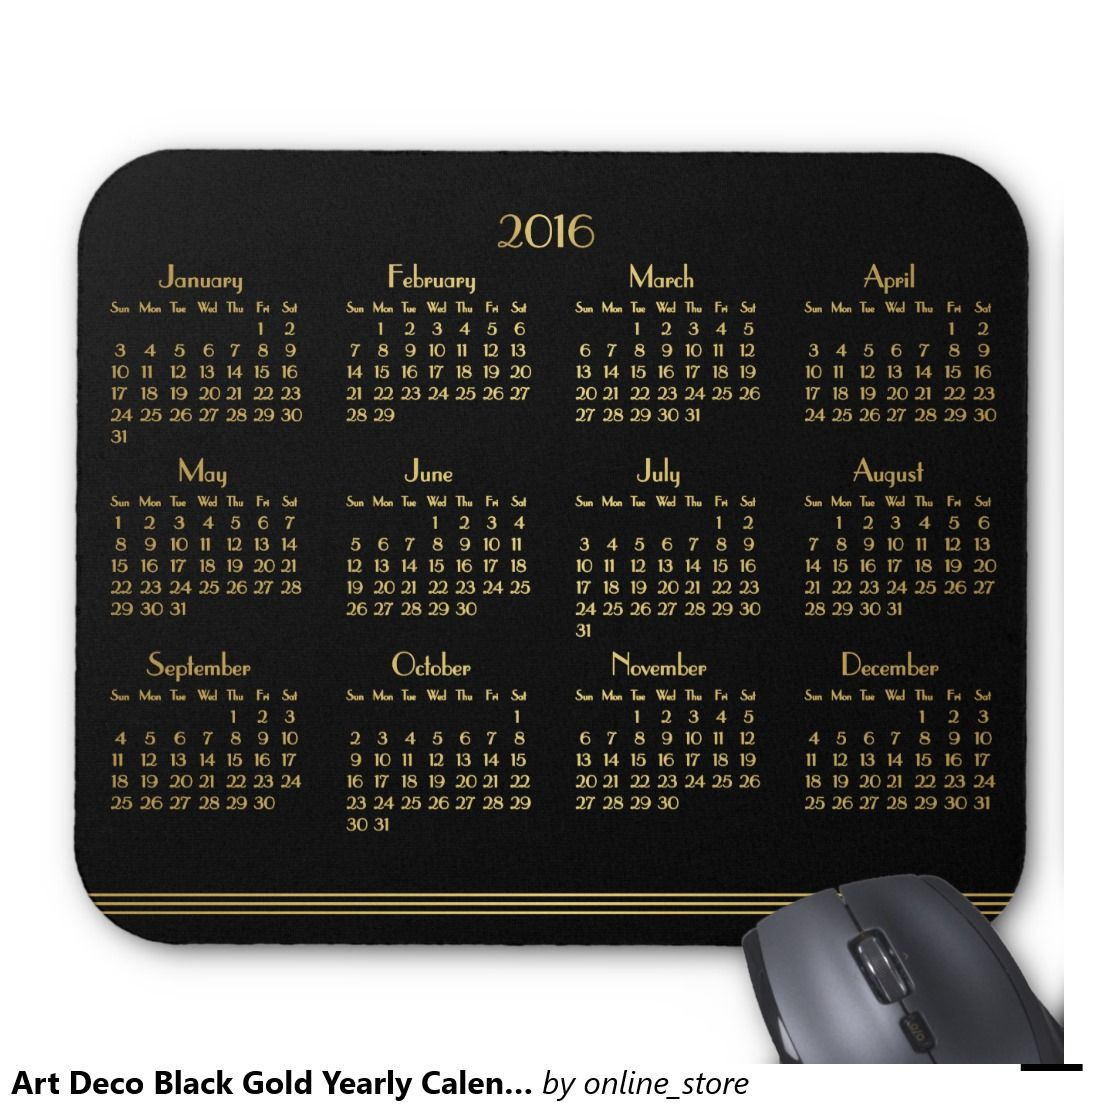 Art Deco Black Gold Yearly Calendar 2016 Mousepad